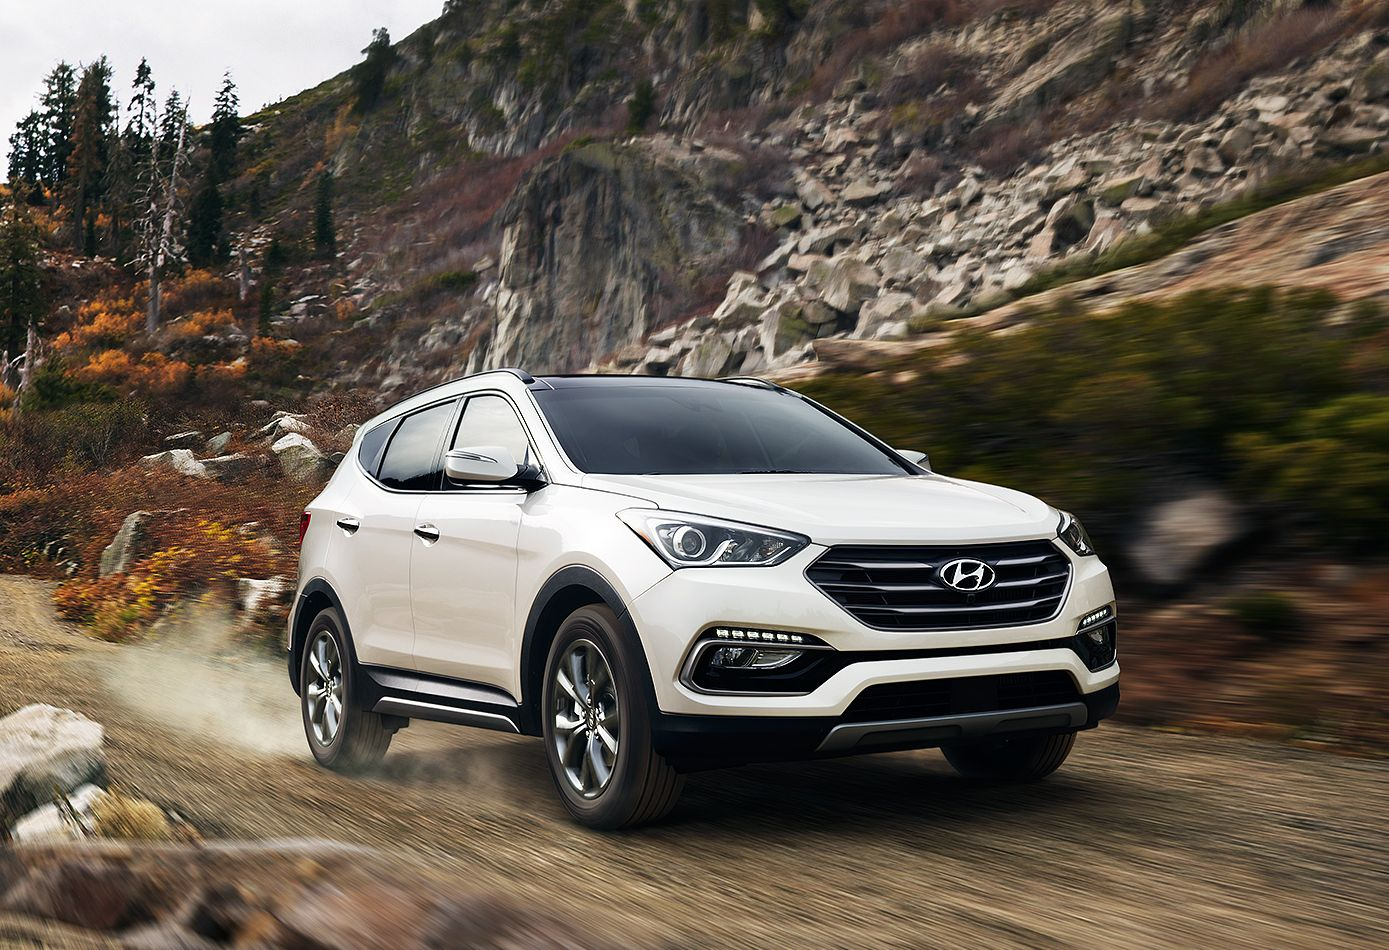 2017 Hyundai Santa Fe Sport for Lease near Fairfax, VA